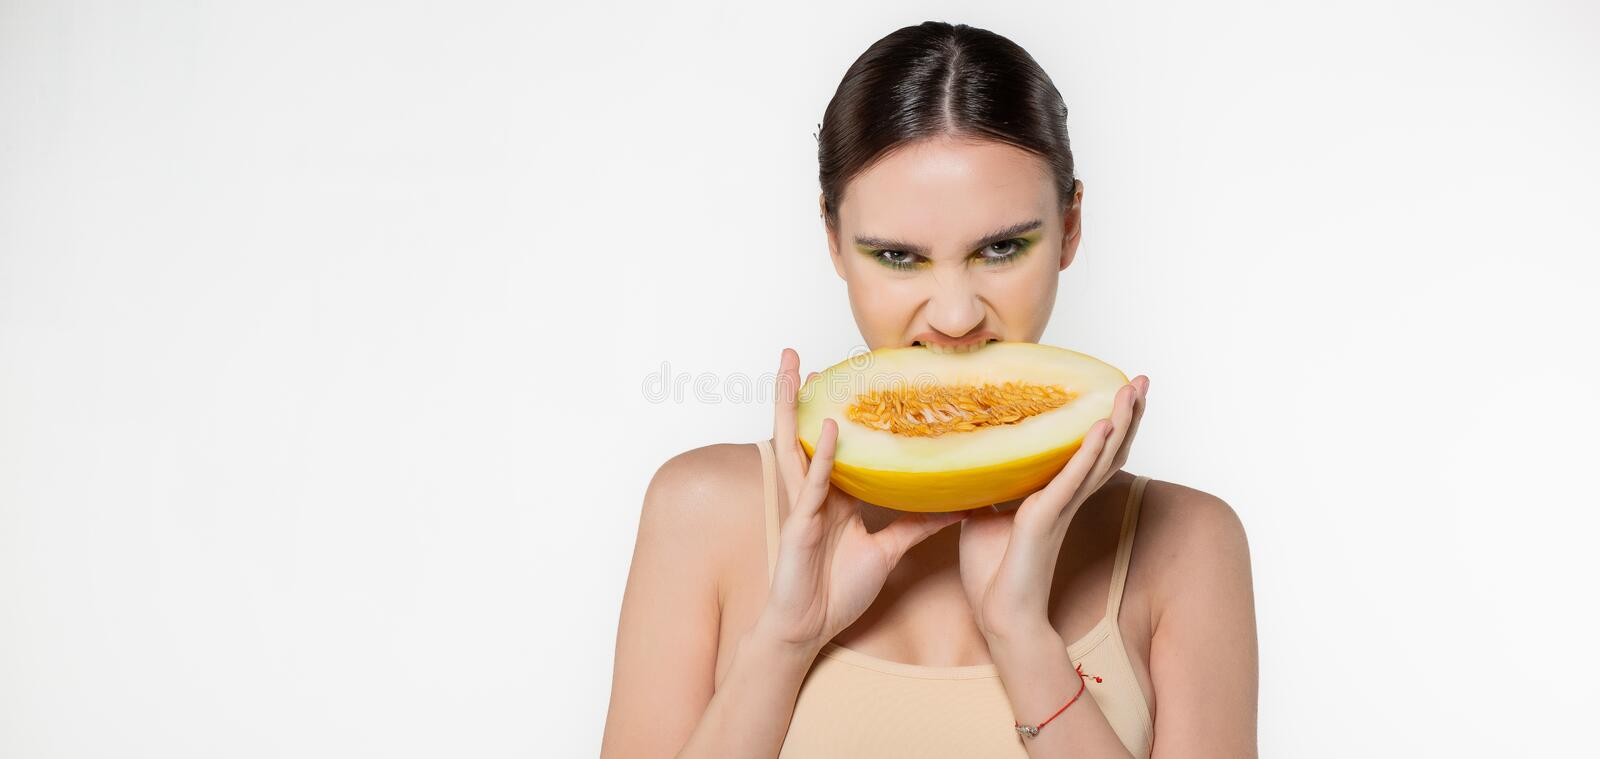 Fashion portrait of young brunette woman with green art makeup that eating sliced melon with evil eyes, copyspace for royalty free stock photos